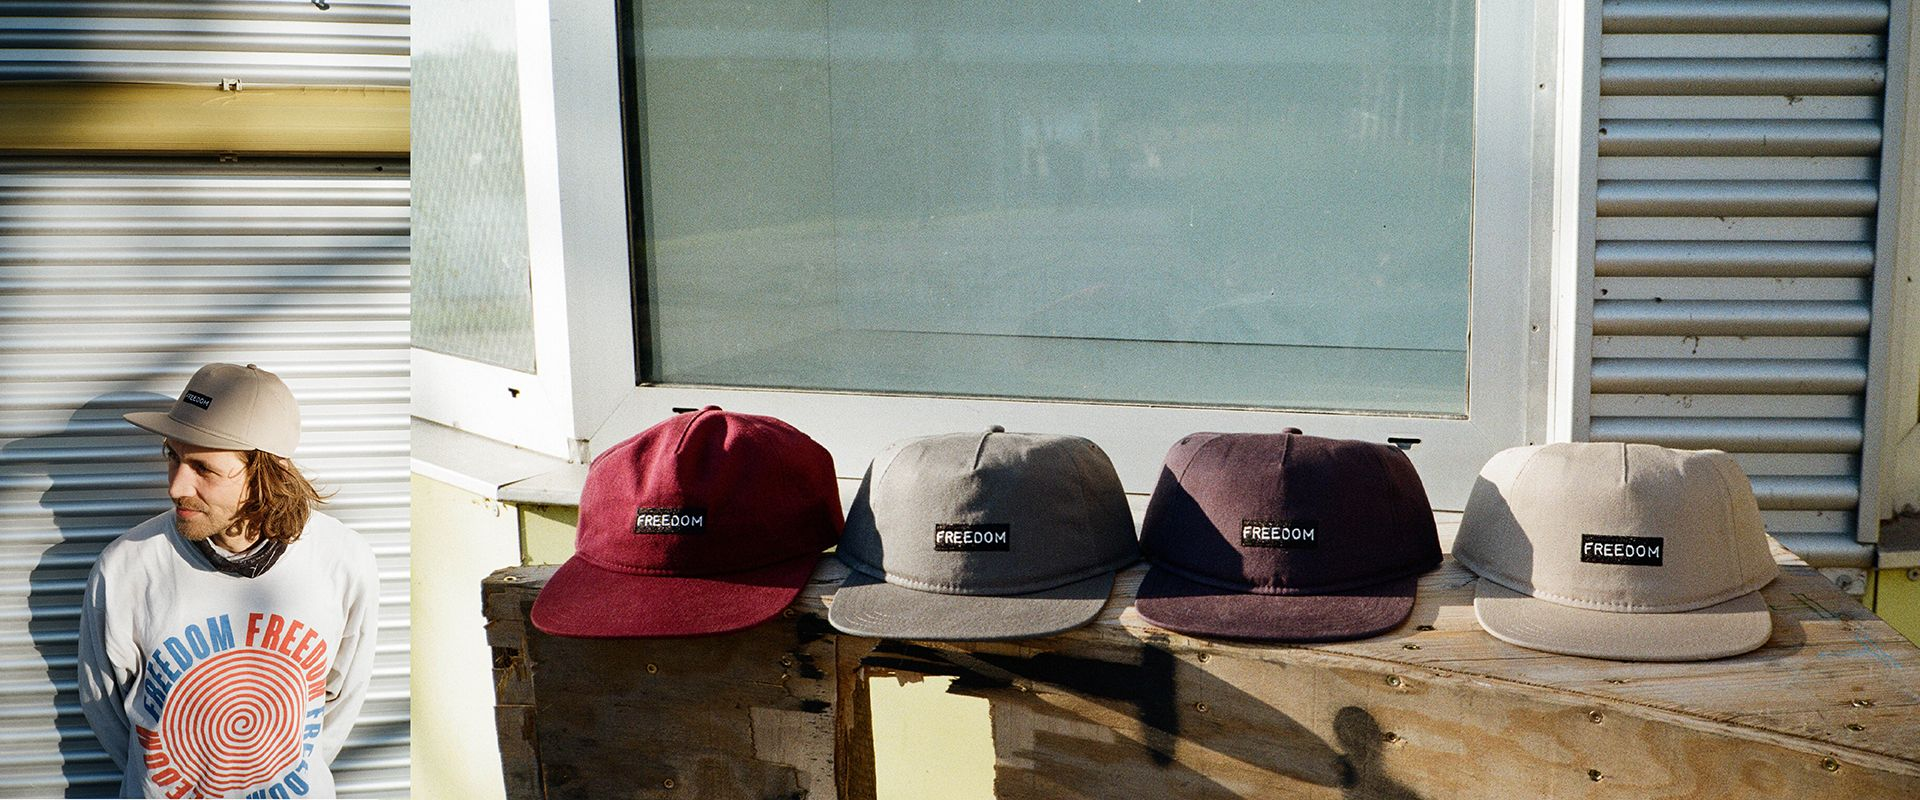 Freedom Skateshop Label Embroidered Caps